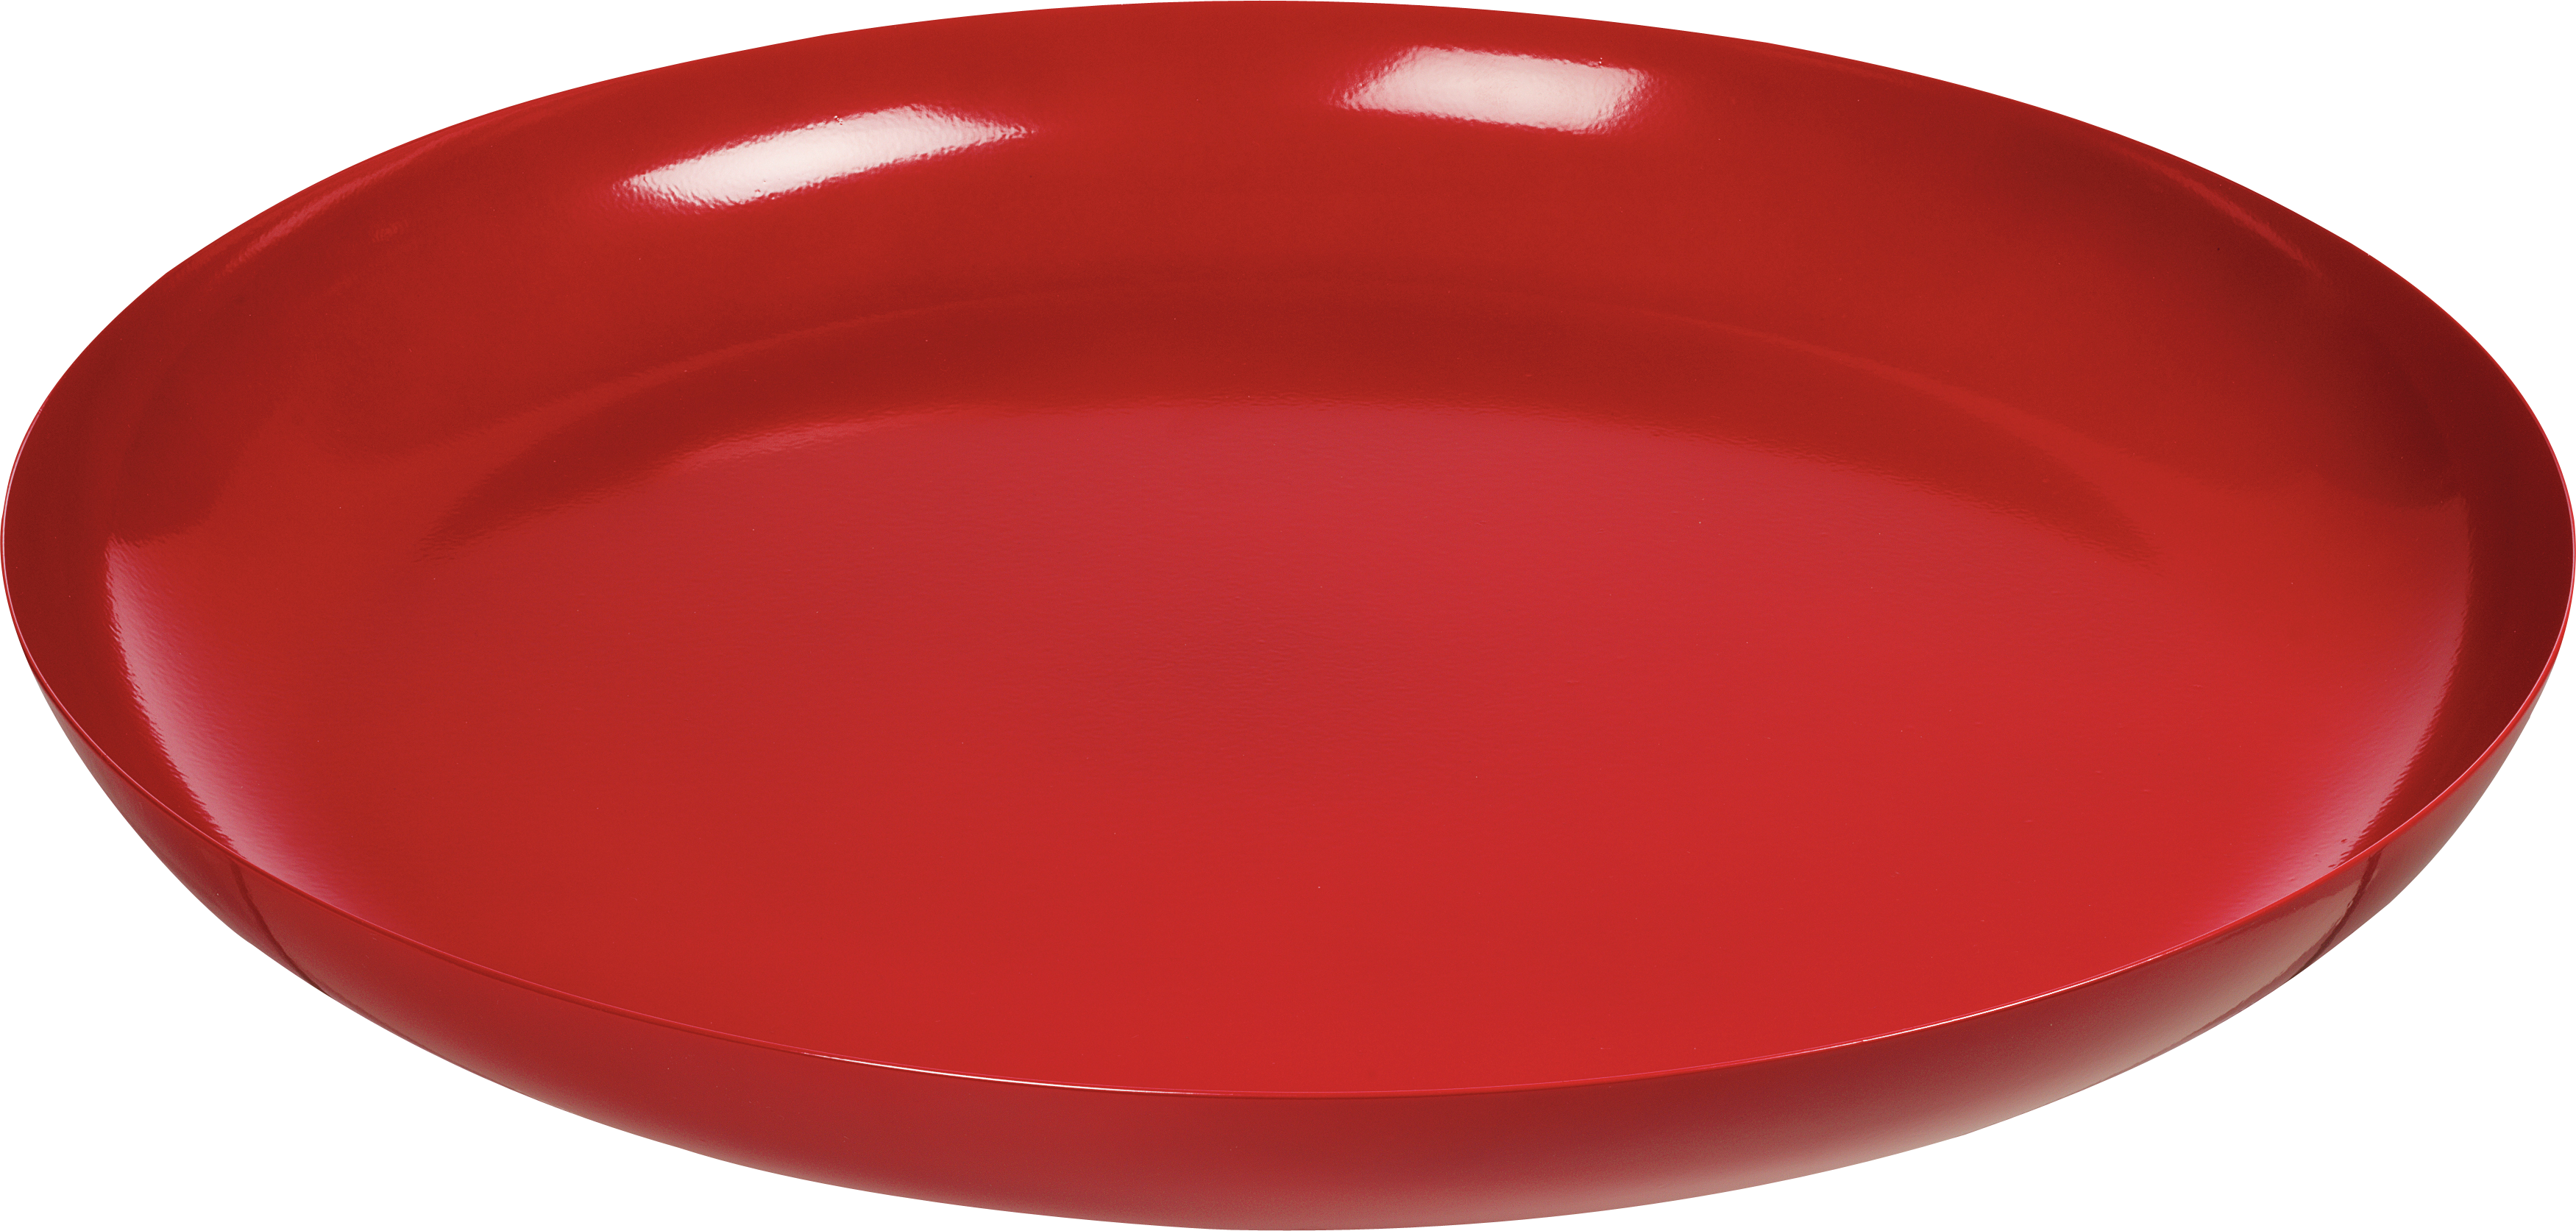 Dishes clipart red plate. Plates png photo images